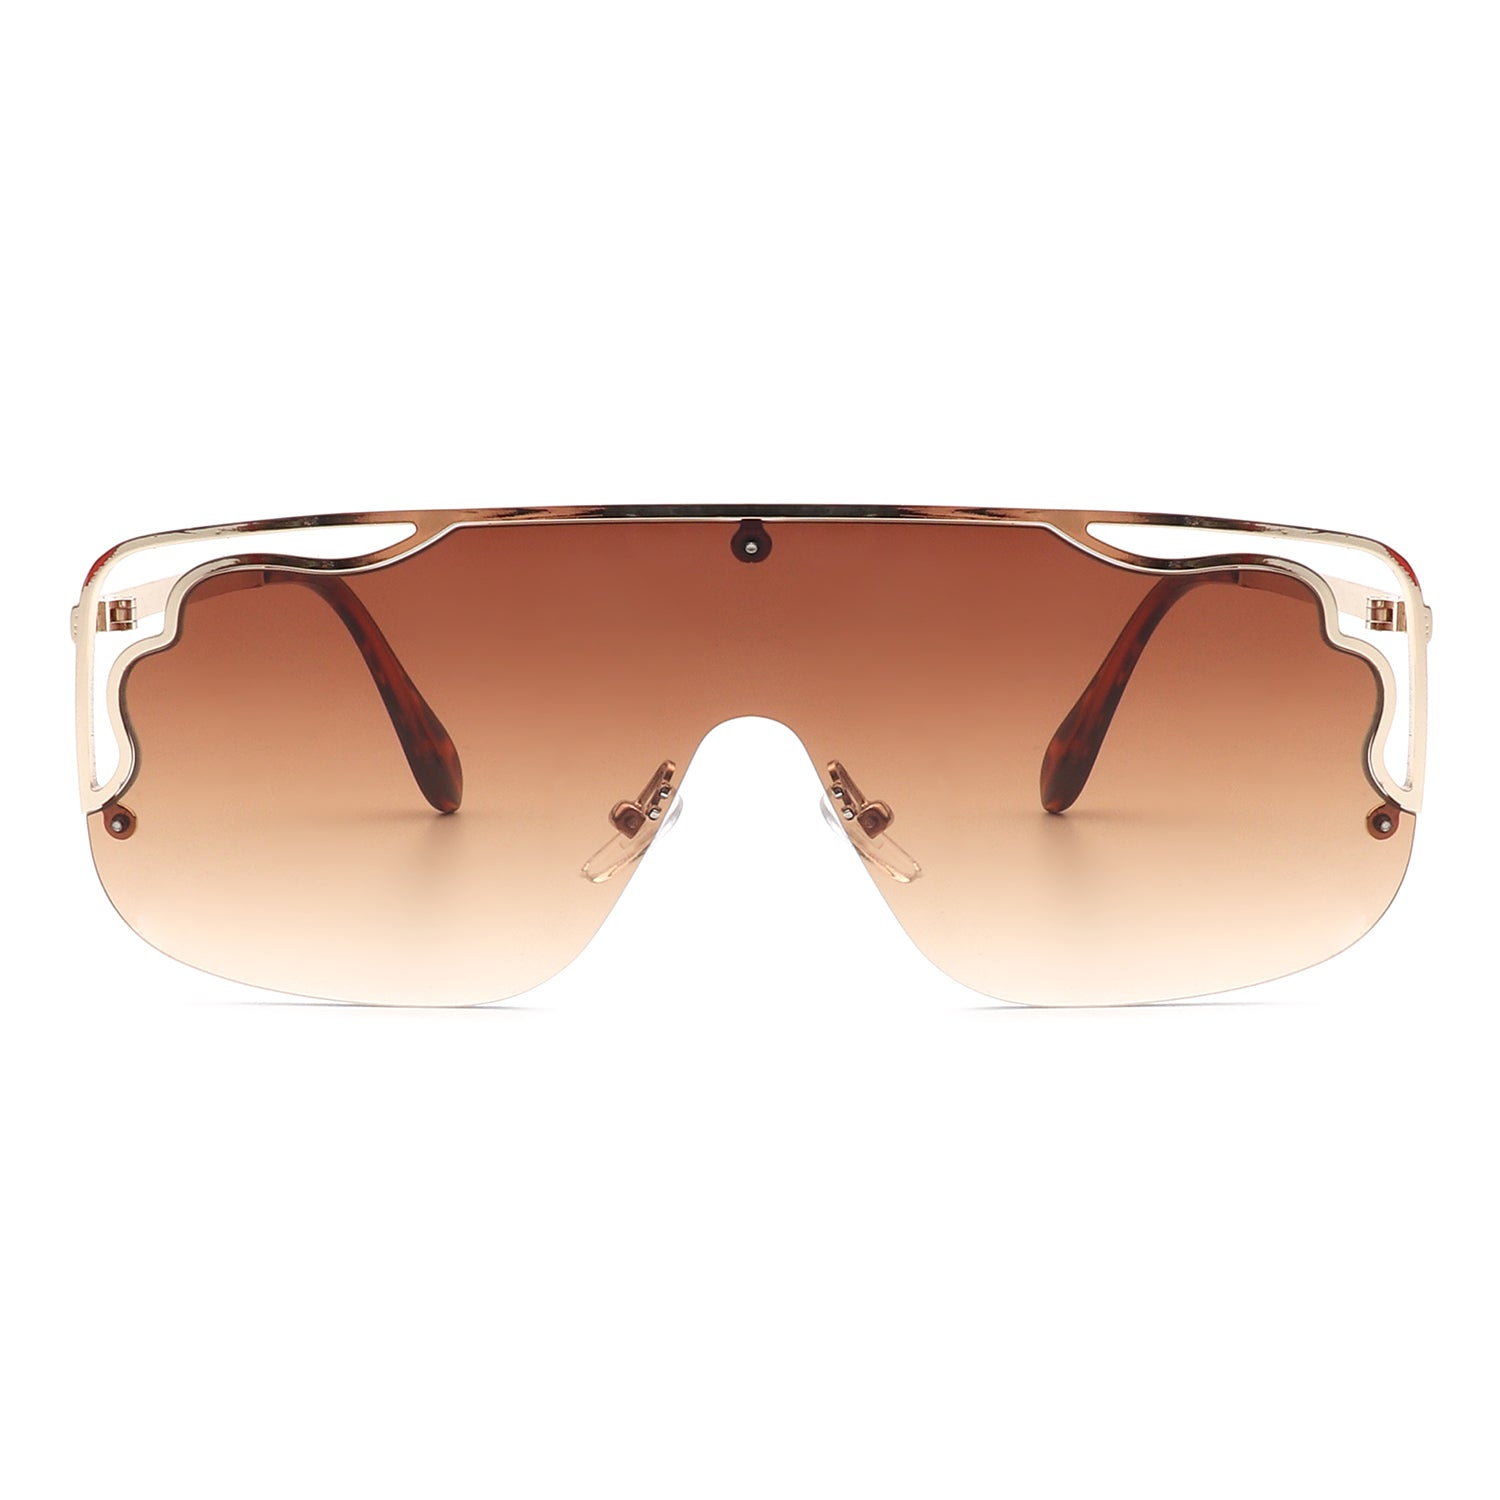 HJ3006 - Square Half Frame Aviator Designer Fashion Sunglasses